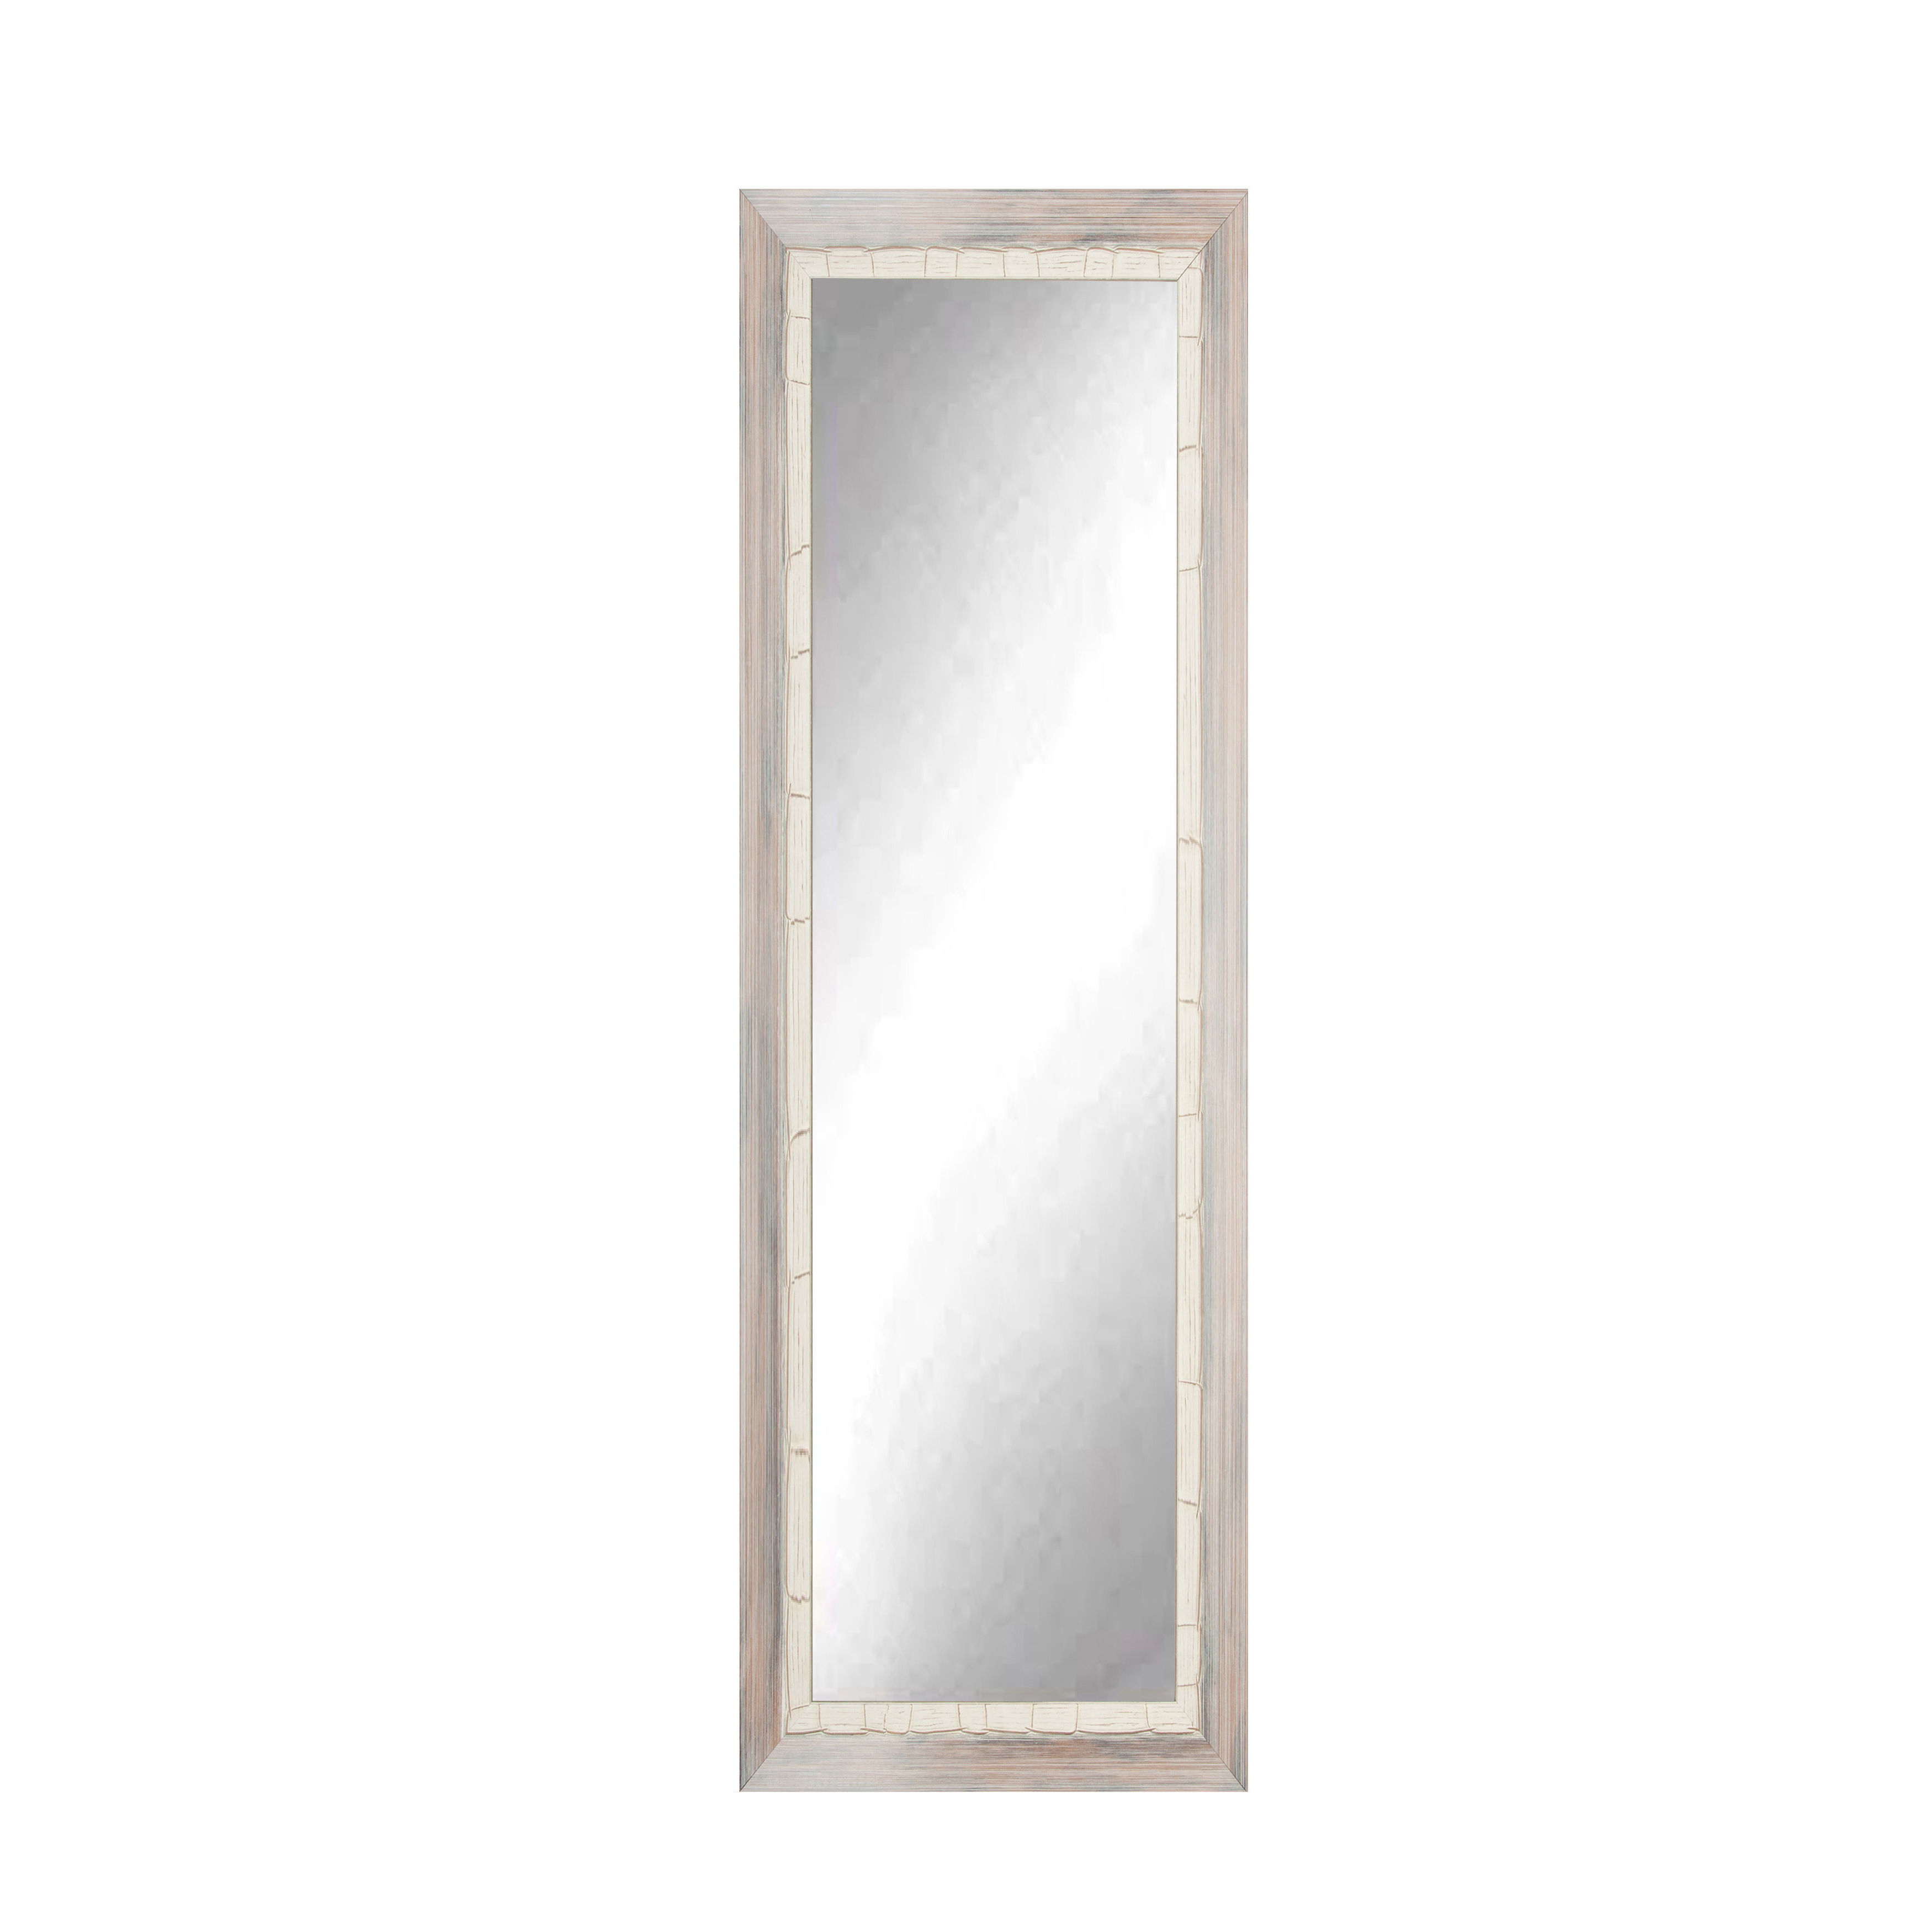 Epinal Shabby Elegance Wall Mirrors Intended For Newest Current Trend Full Length Wall Mirror (Gallery 8 of 20)